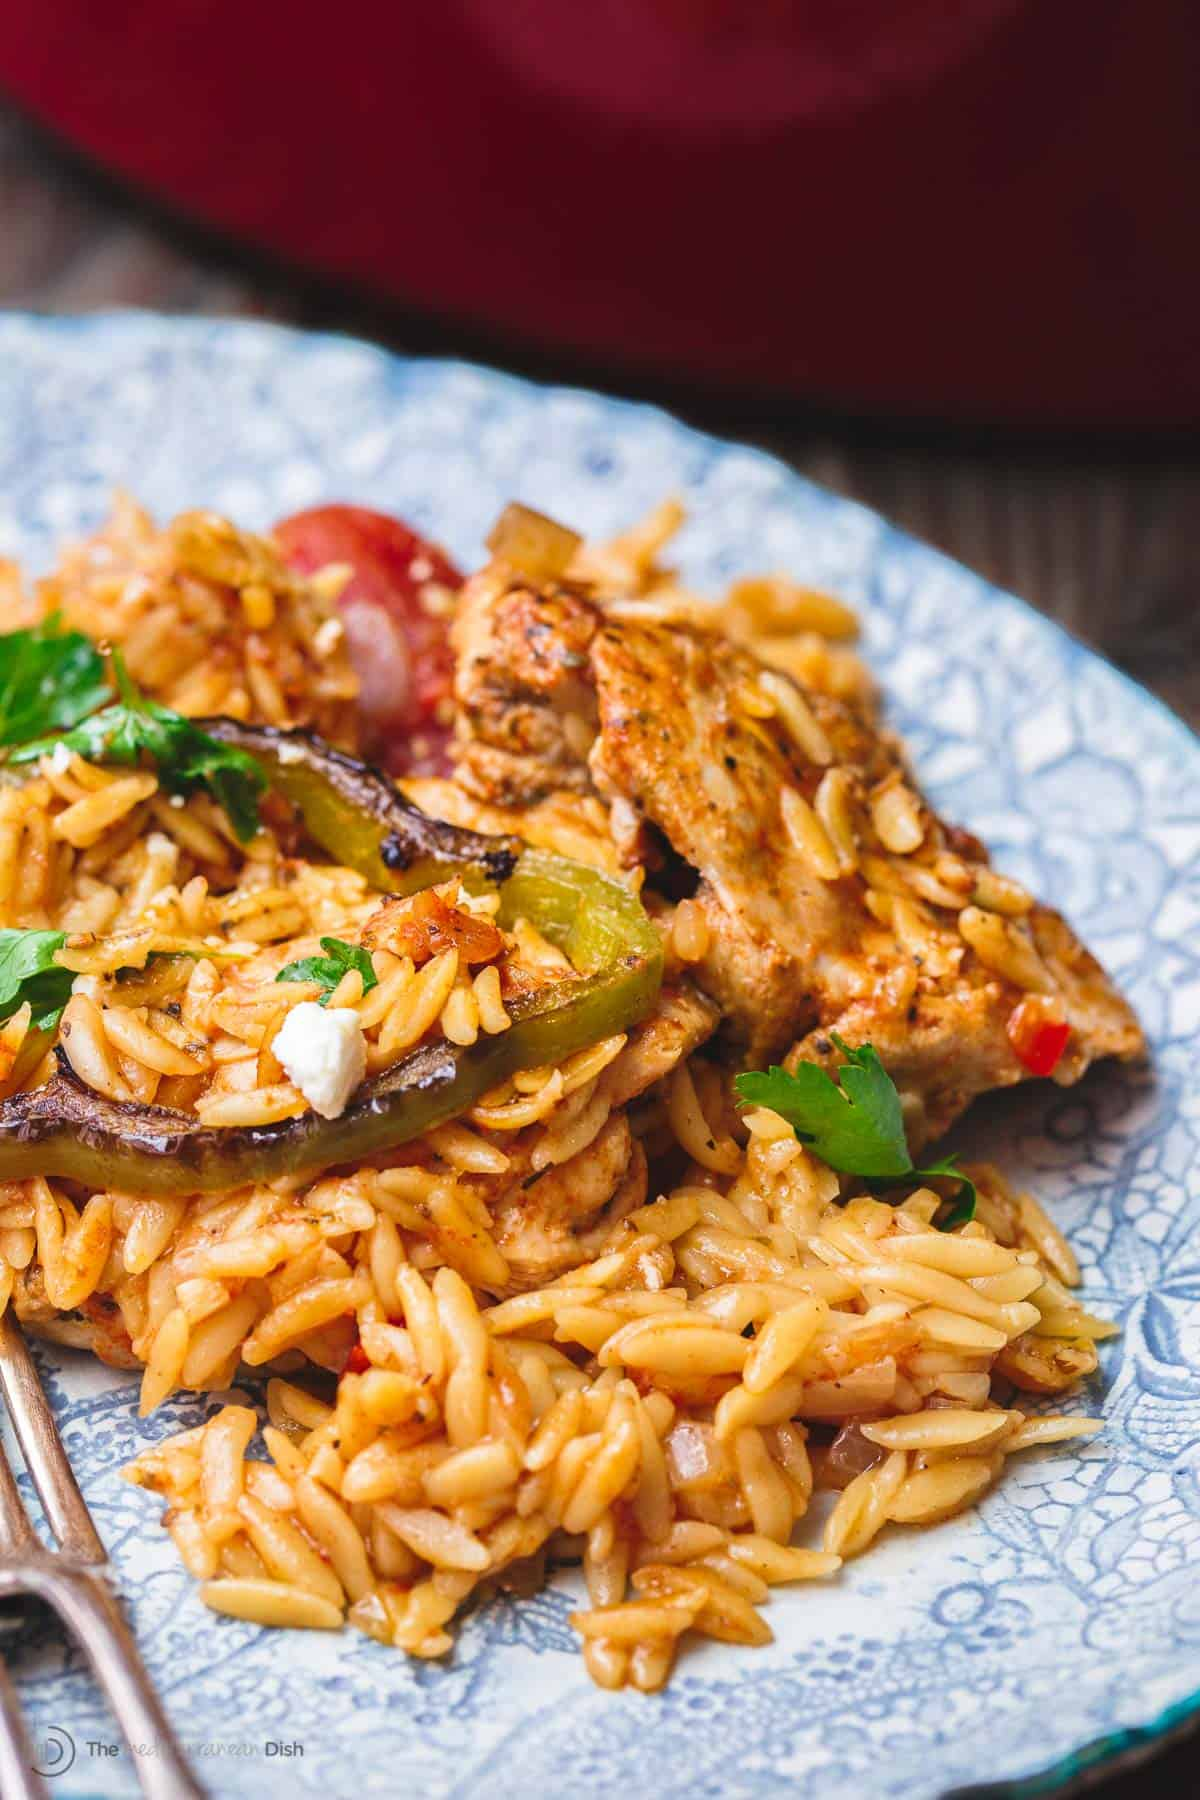 Greek chicken orzo served on a light blue plate